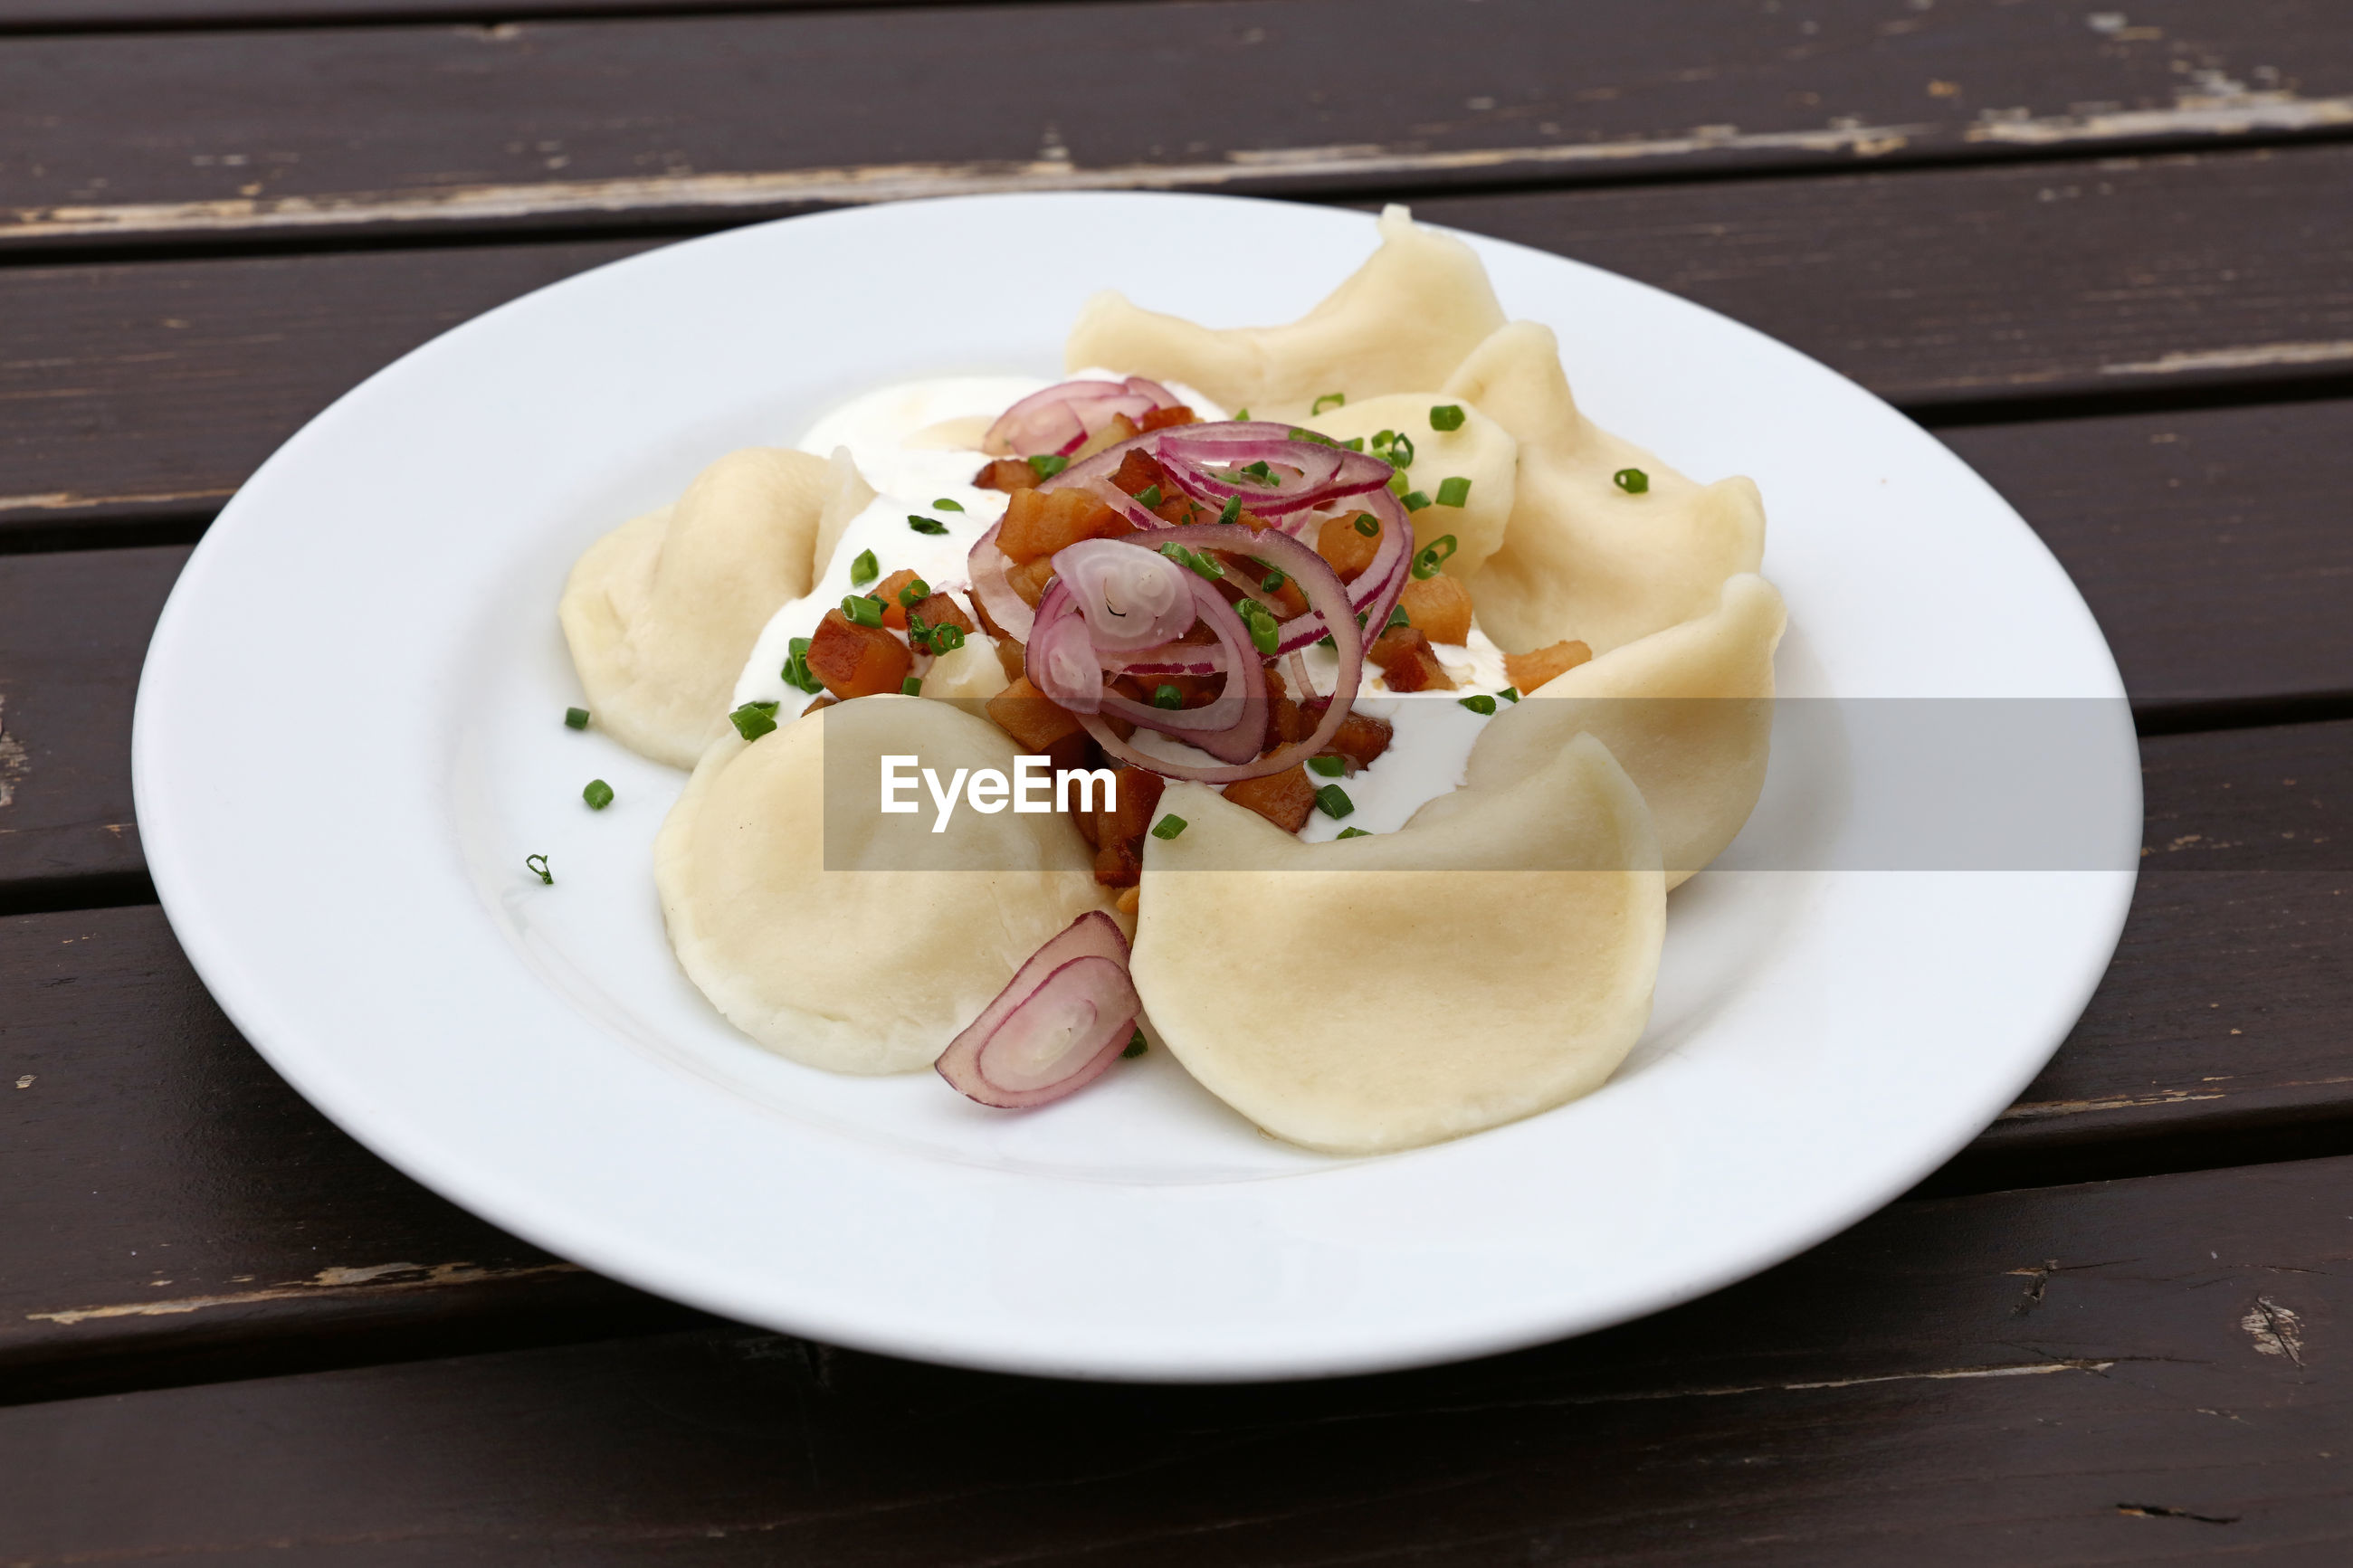 High angle view of pierogi served in plate on table